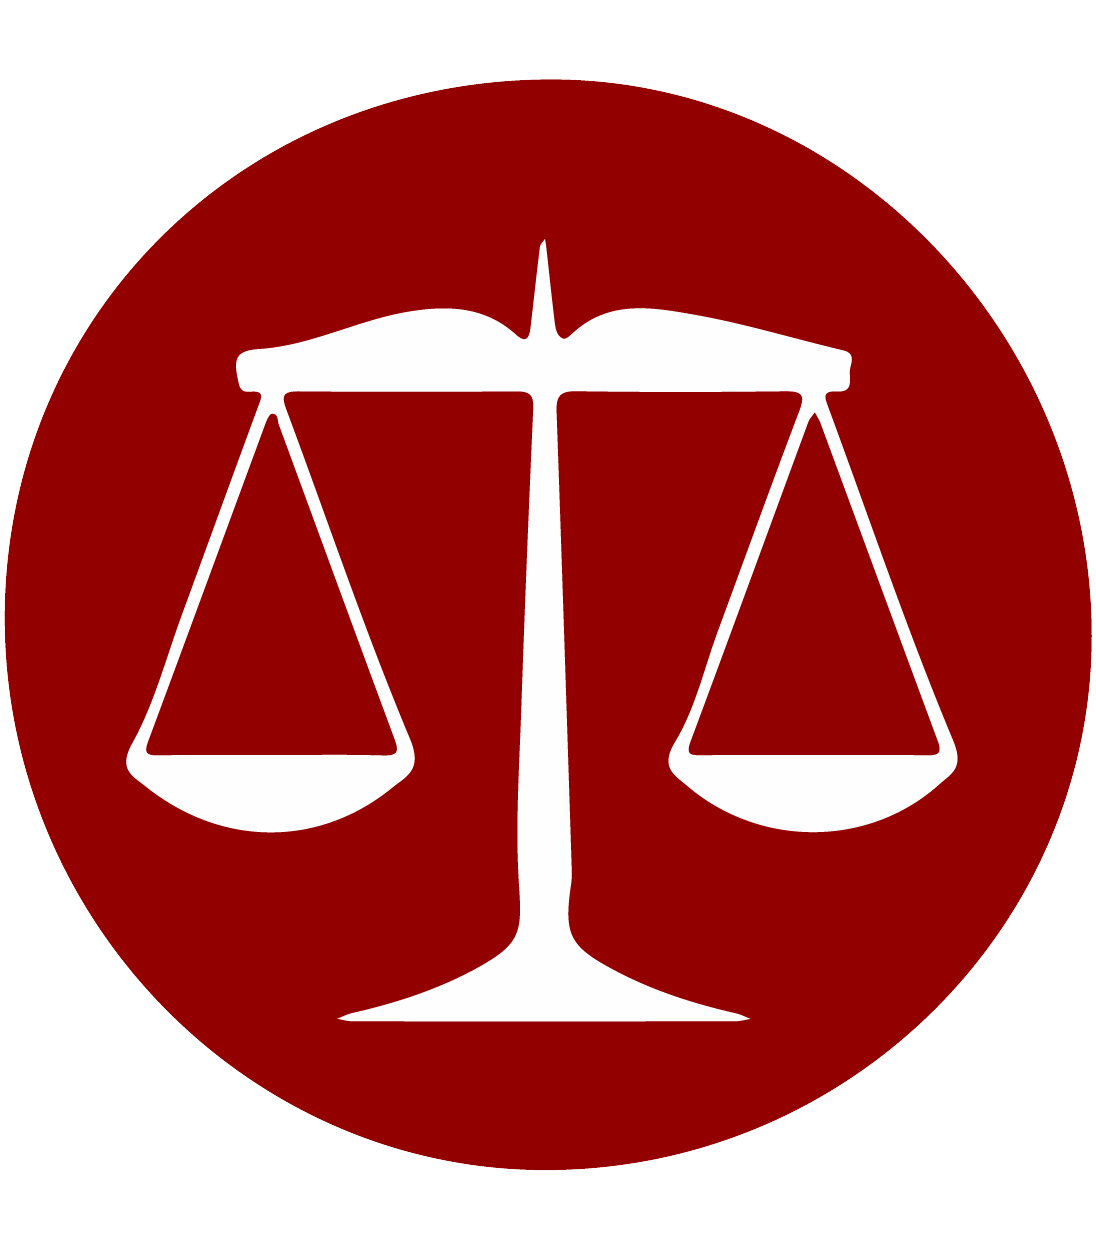 Legal history icon showing the scales of justice